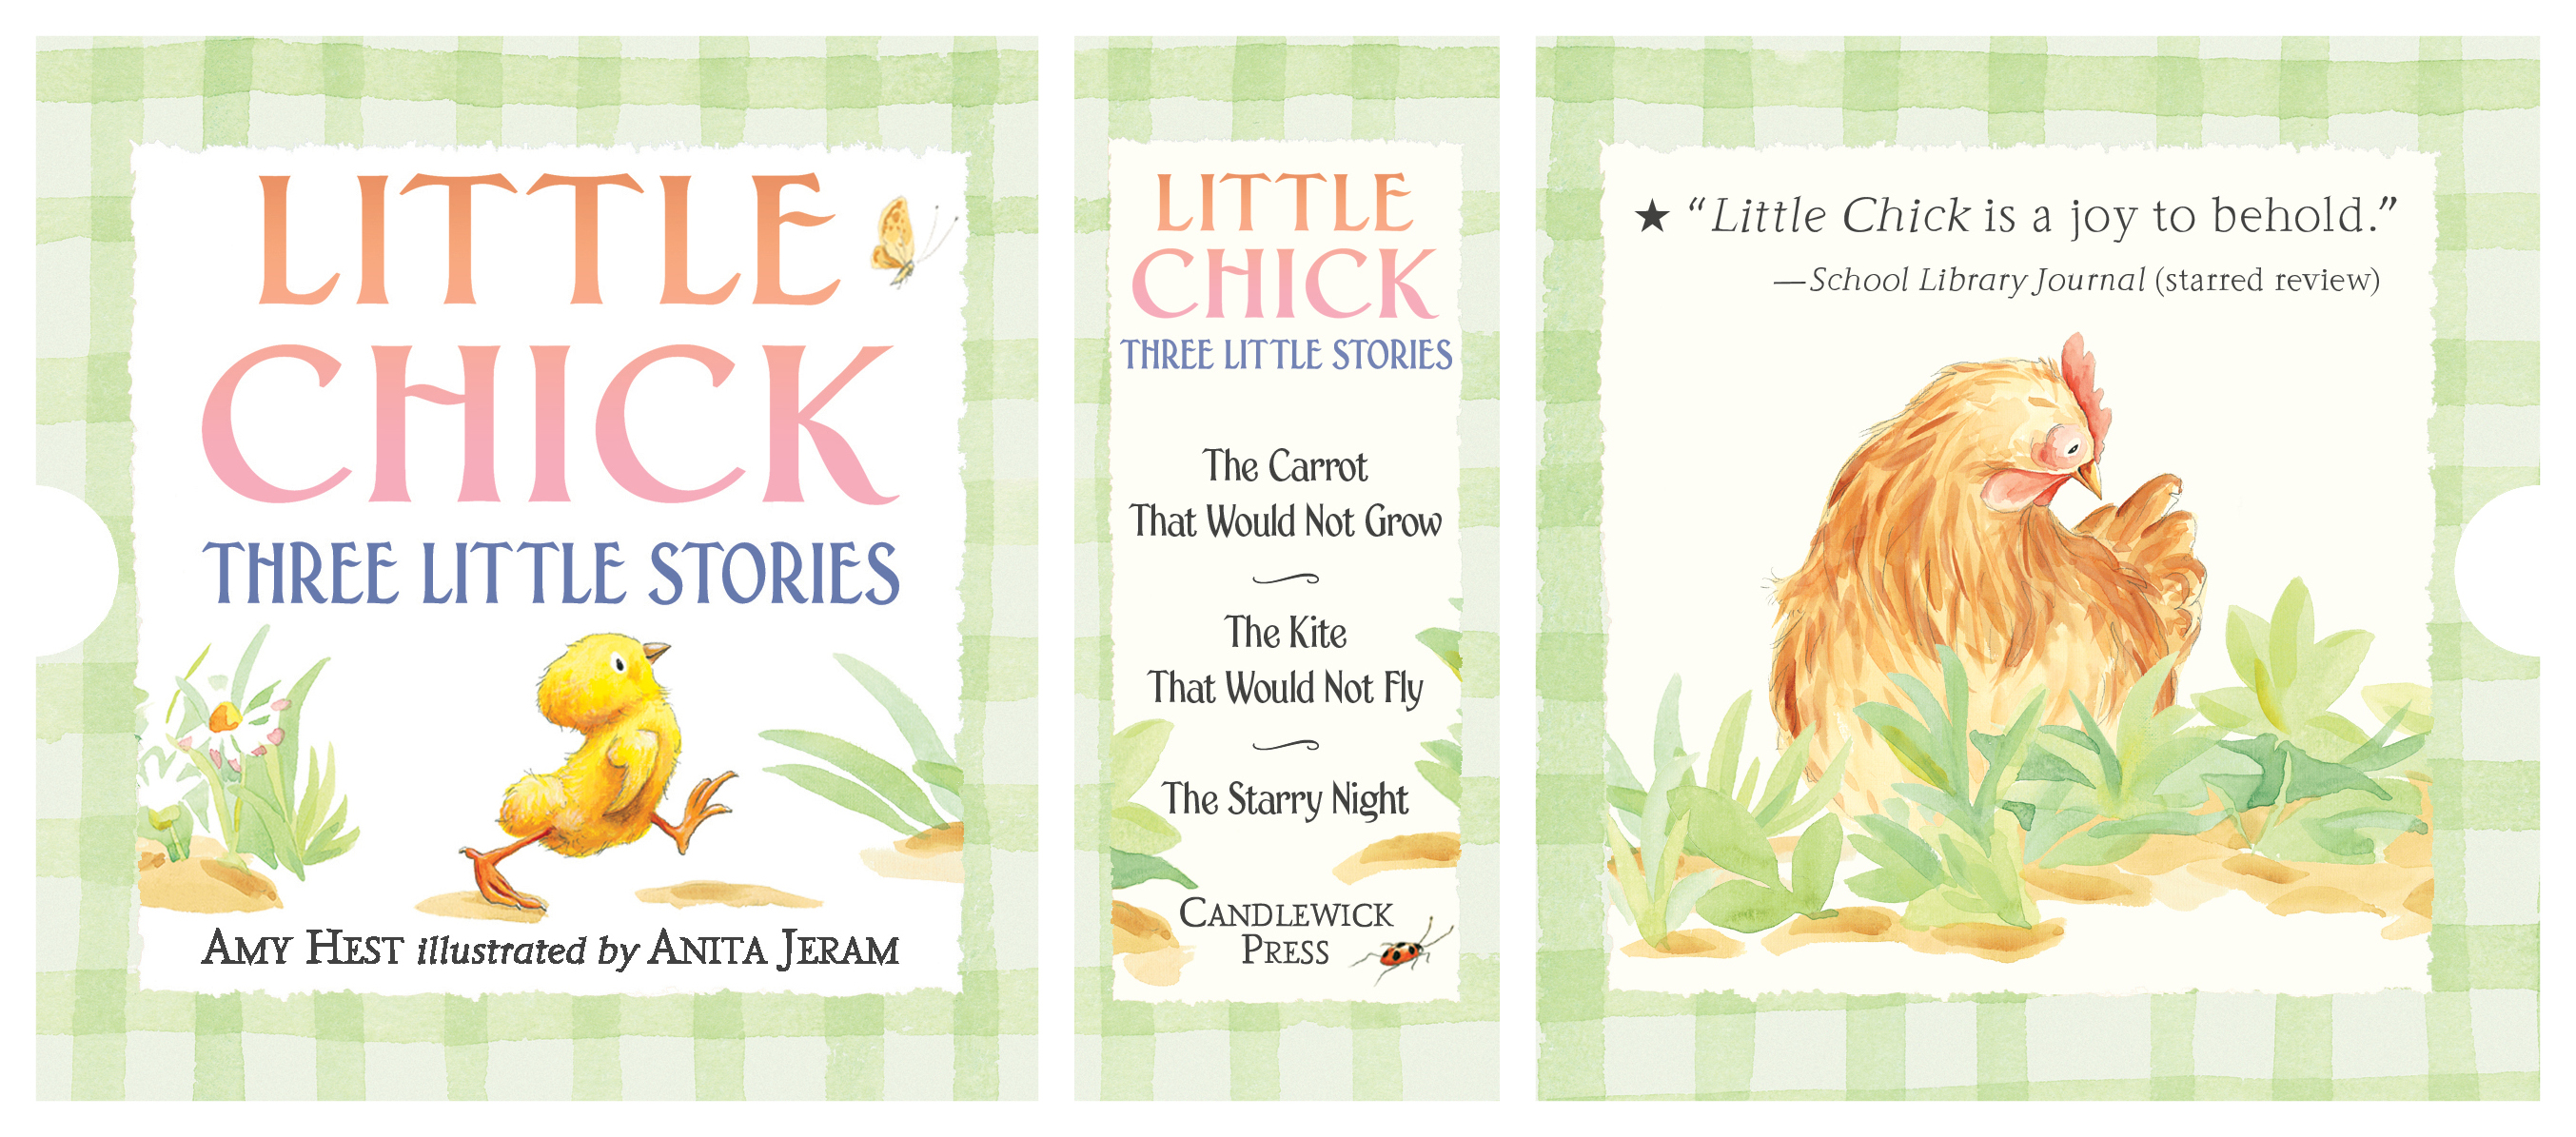 LITTLE CHICK: THREE LITTLE STORIES boxed set